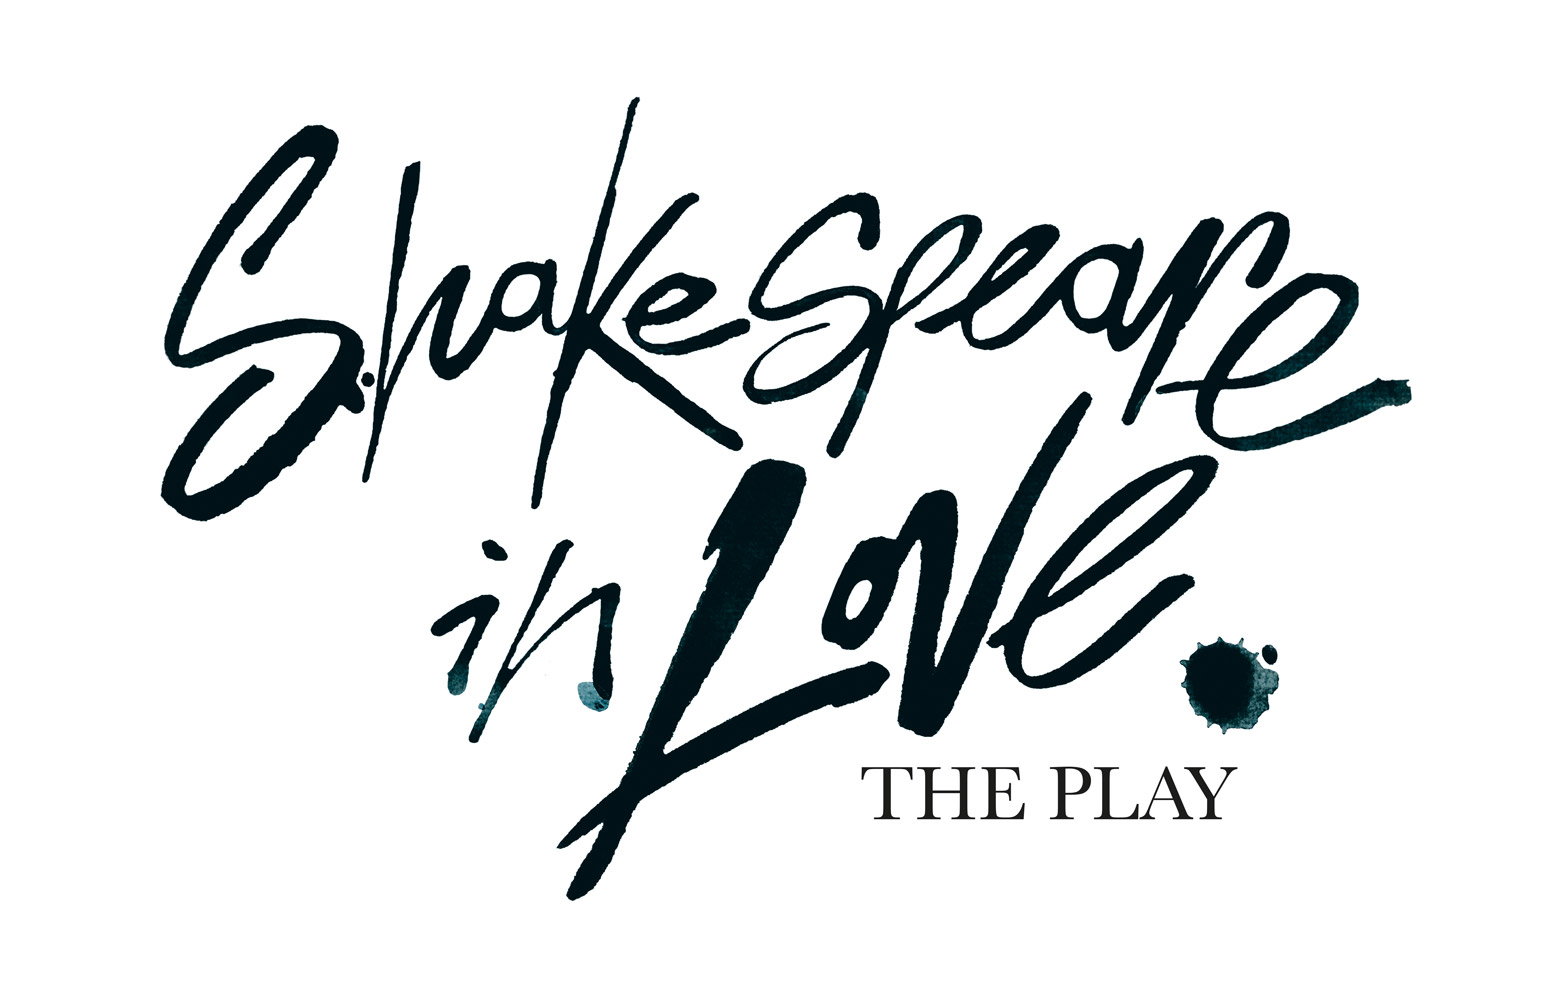 shakespeare-in-love-the-play